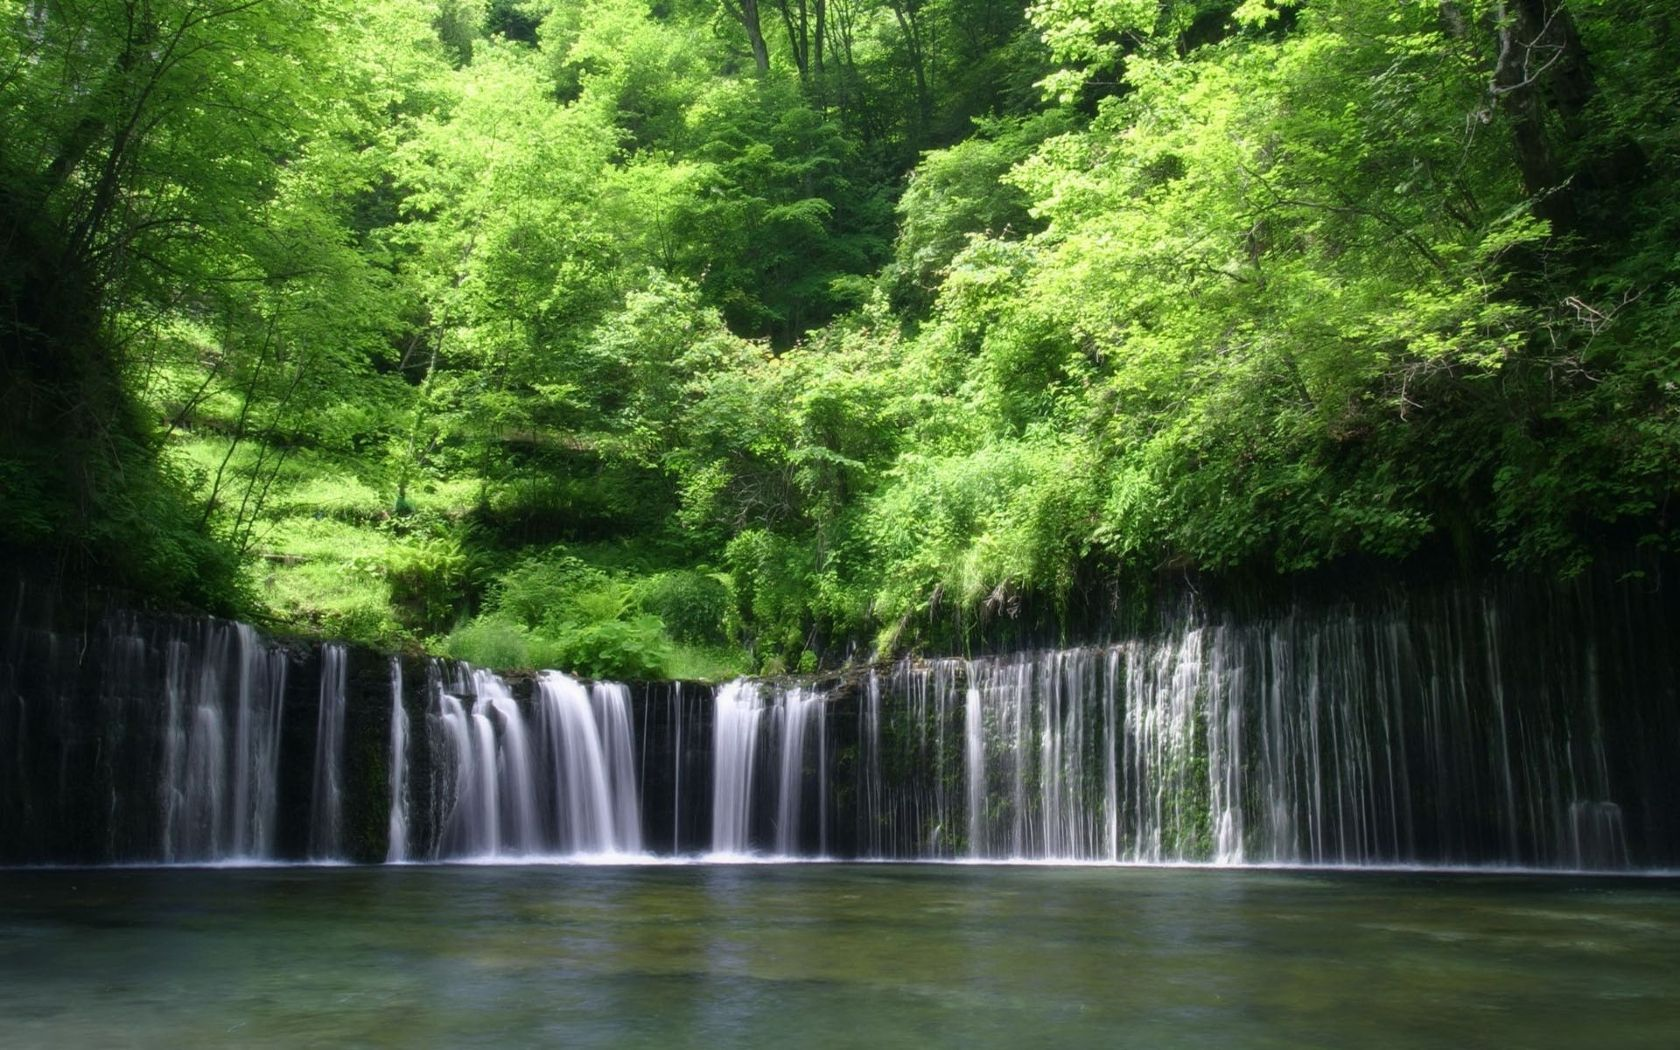 Rain Forest The Place We Want To Save Waterfall Wallpaper Forest Waterfall Waterfall